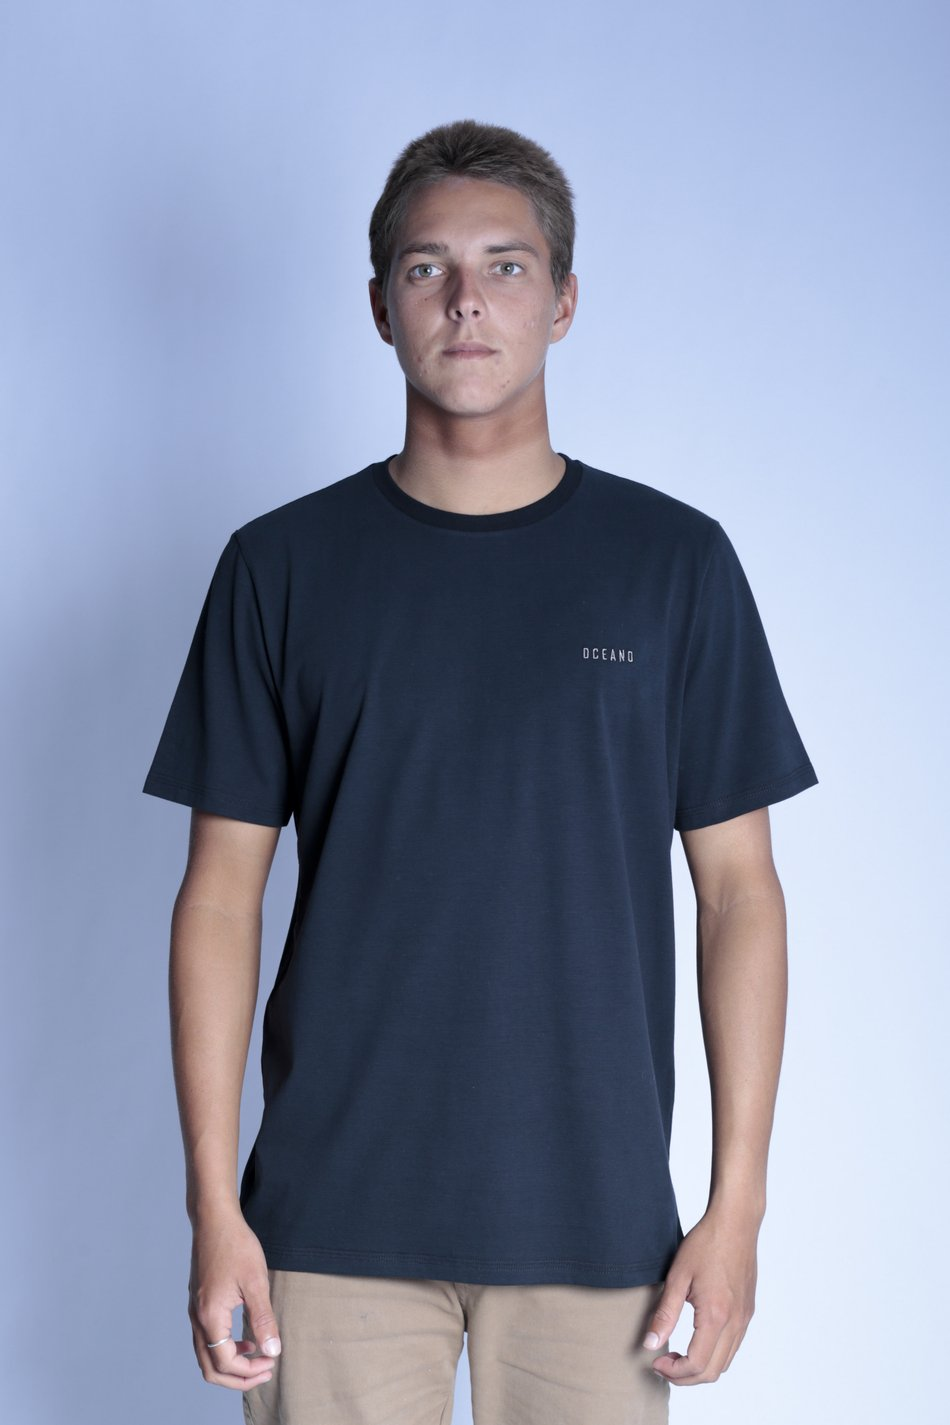 CAMISETA BORDADO OCEANO CONFORTO PREMIUM AROMA HERBAL